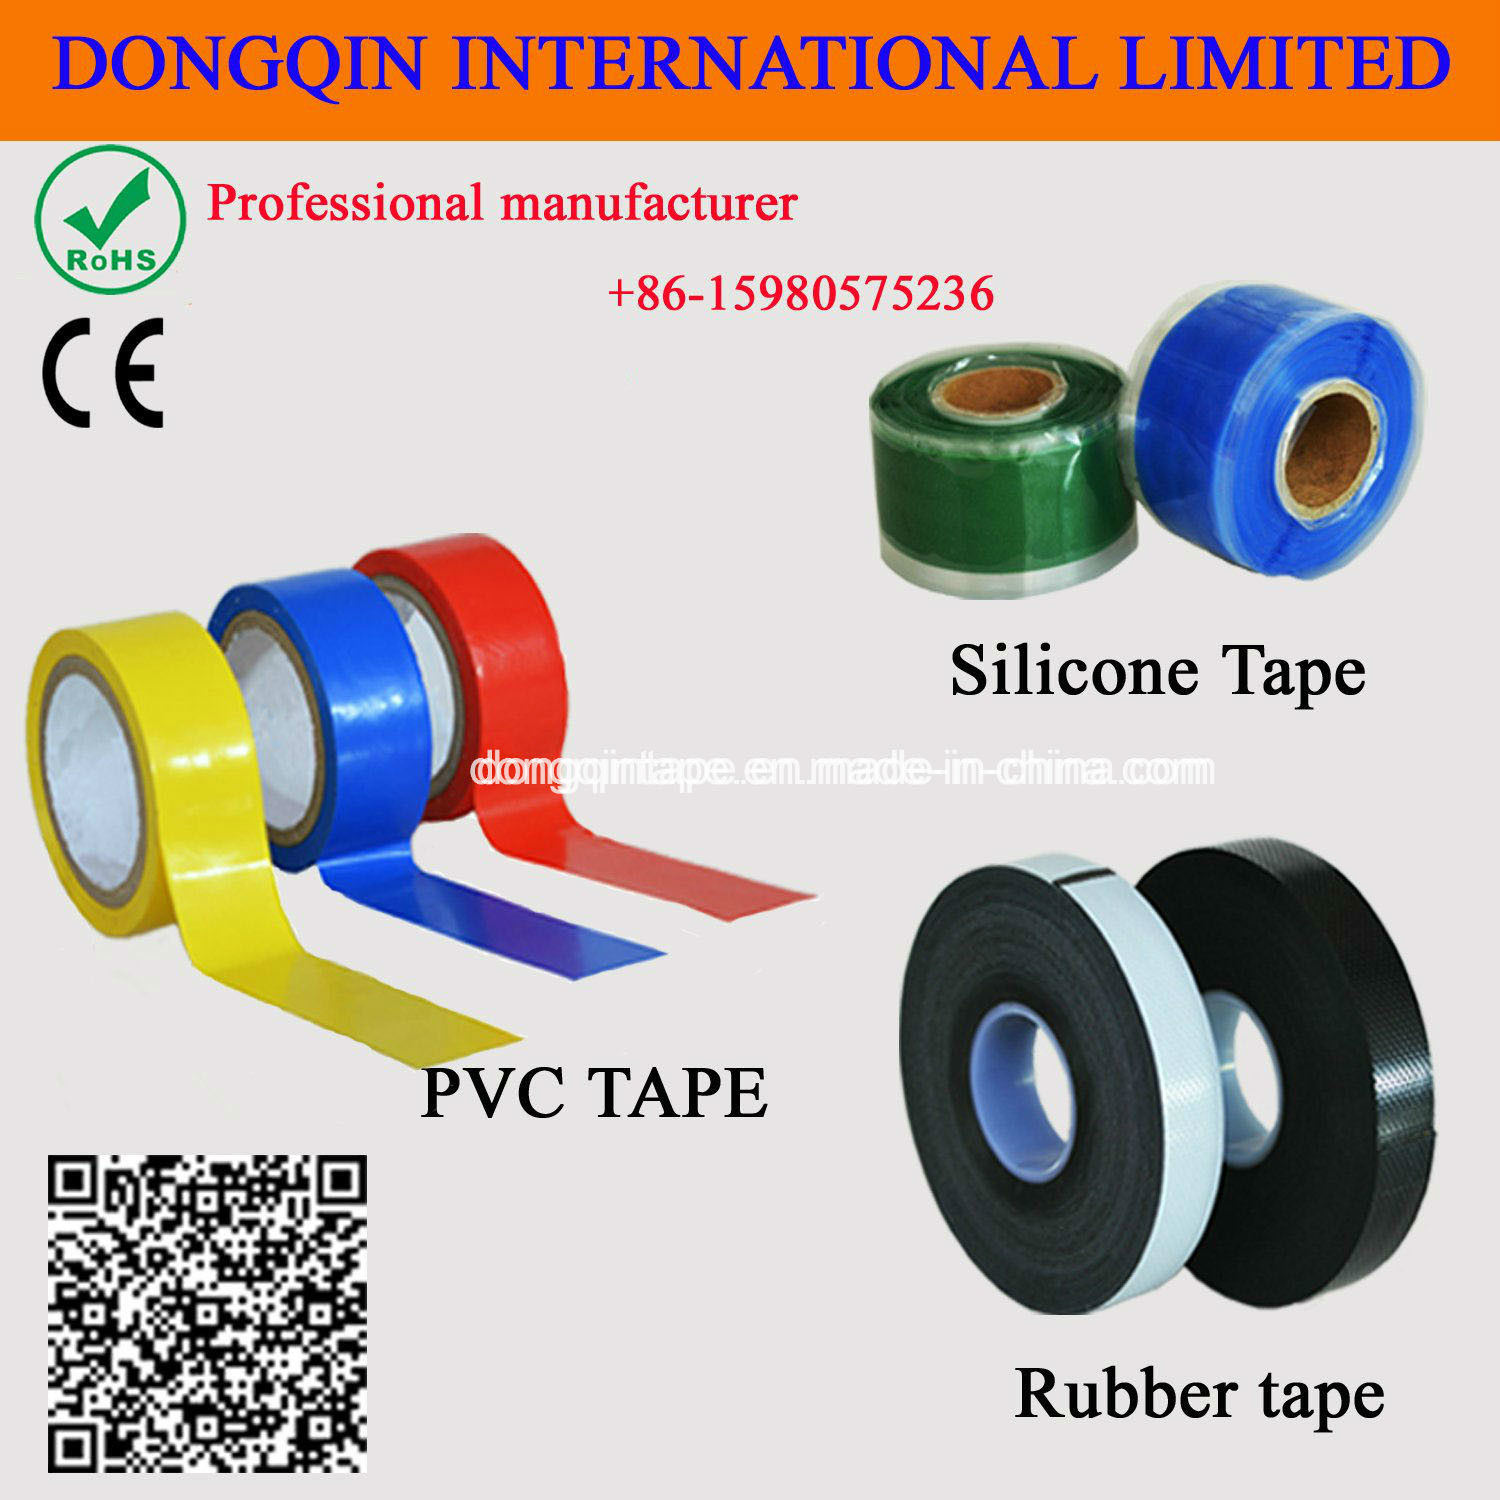 China Professional Manufacturer of PVC Electrical Insulating Tape ...